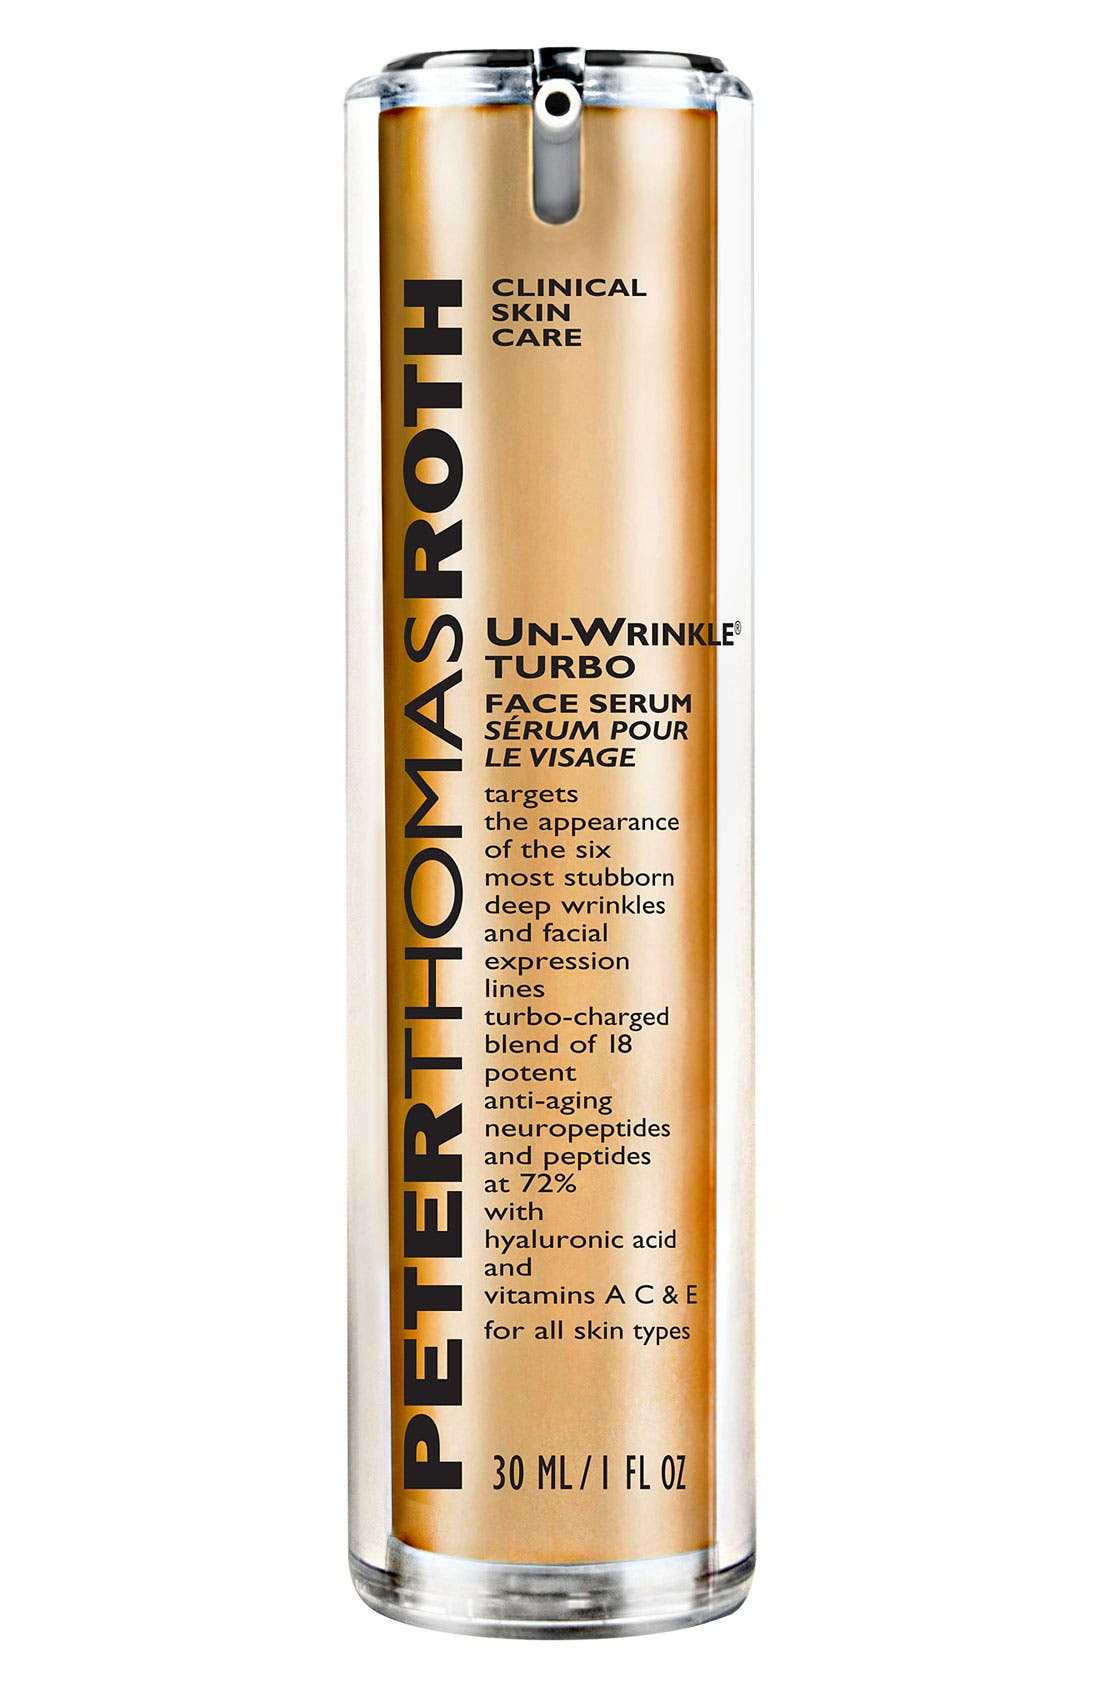 Peter Thomas Roth Un-Wrinkle® Turbo Face Serum